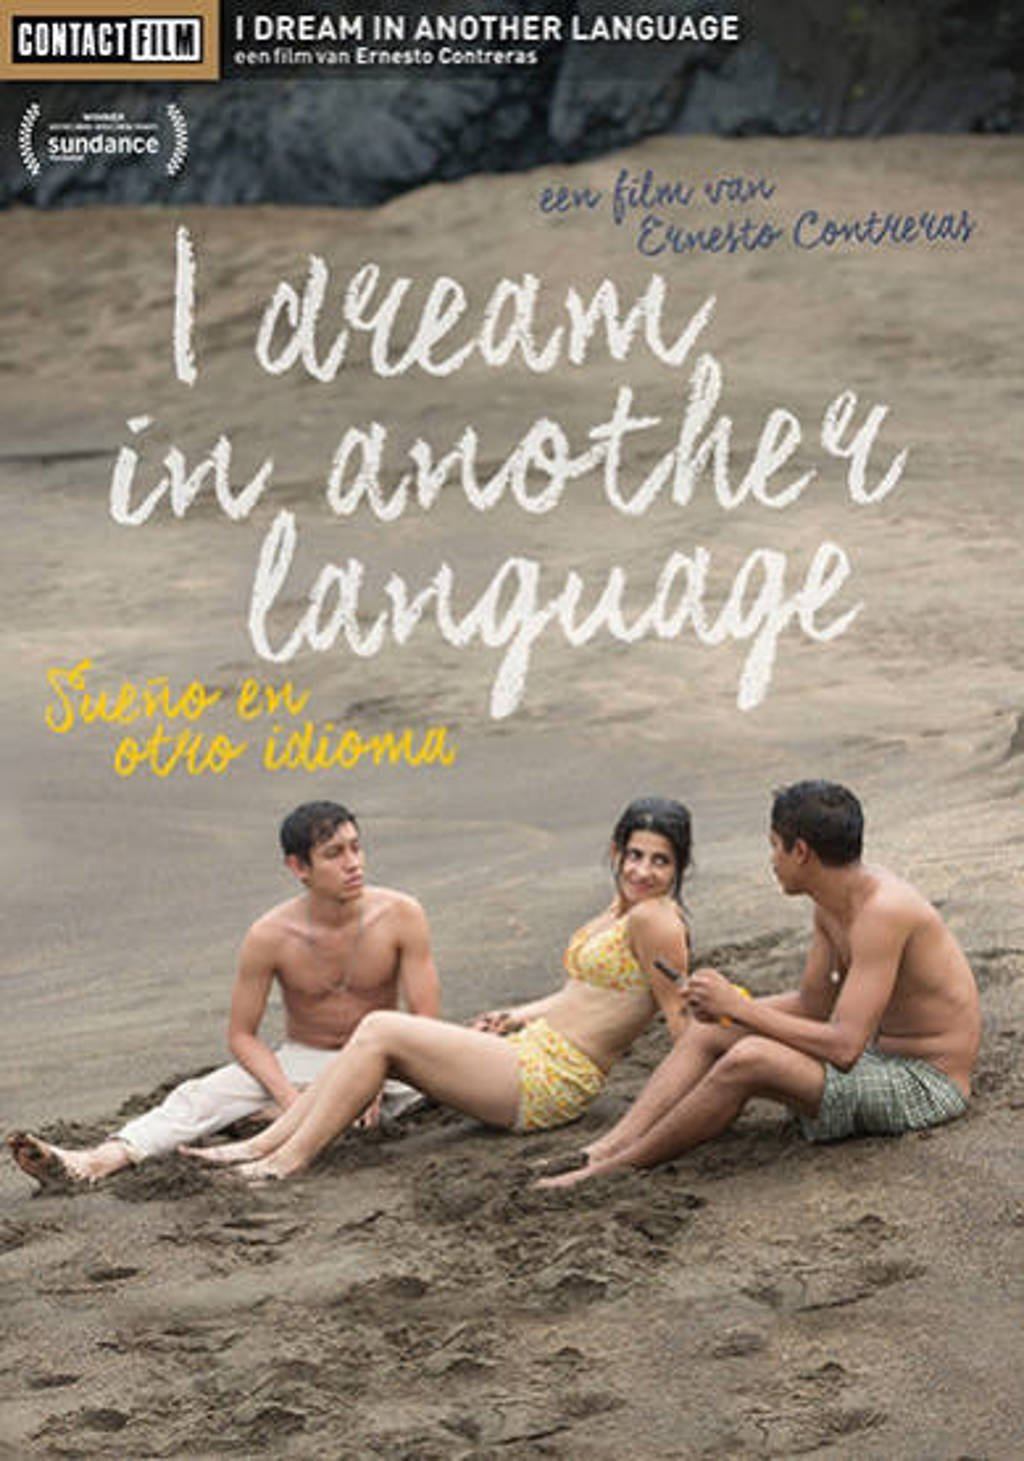 I dream in another language (NL-only) (DVD)